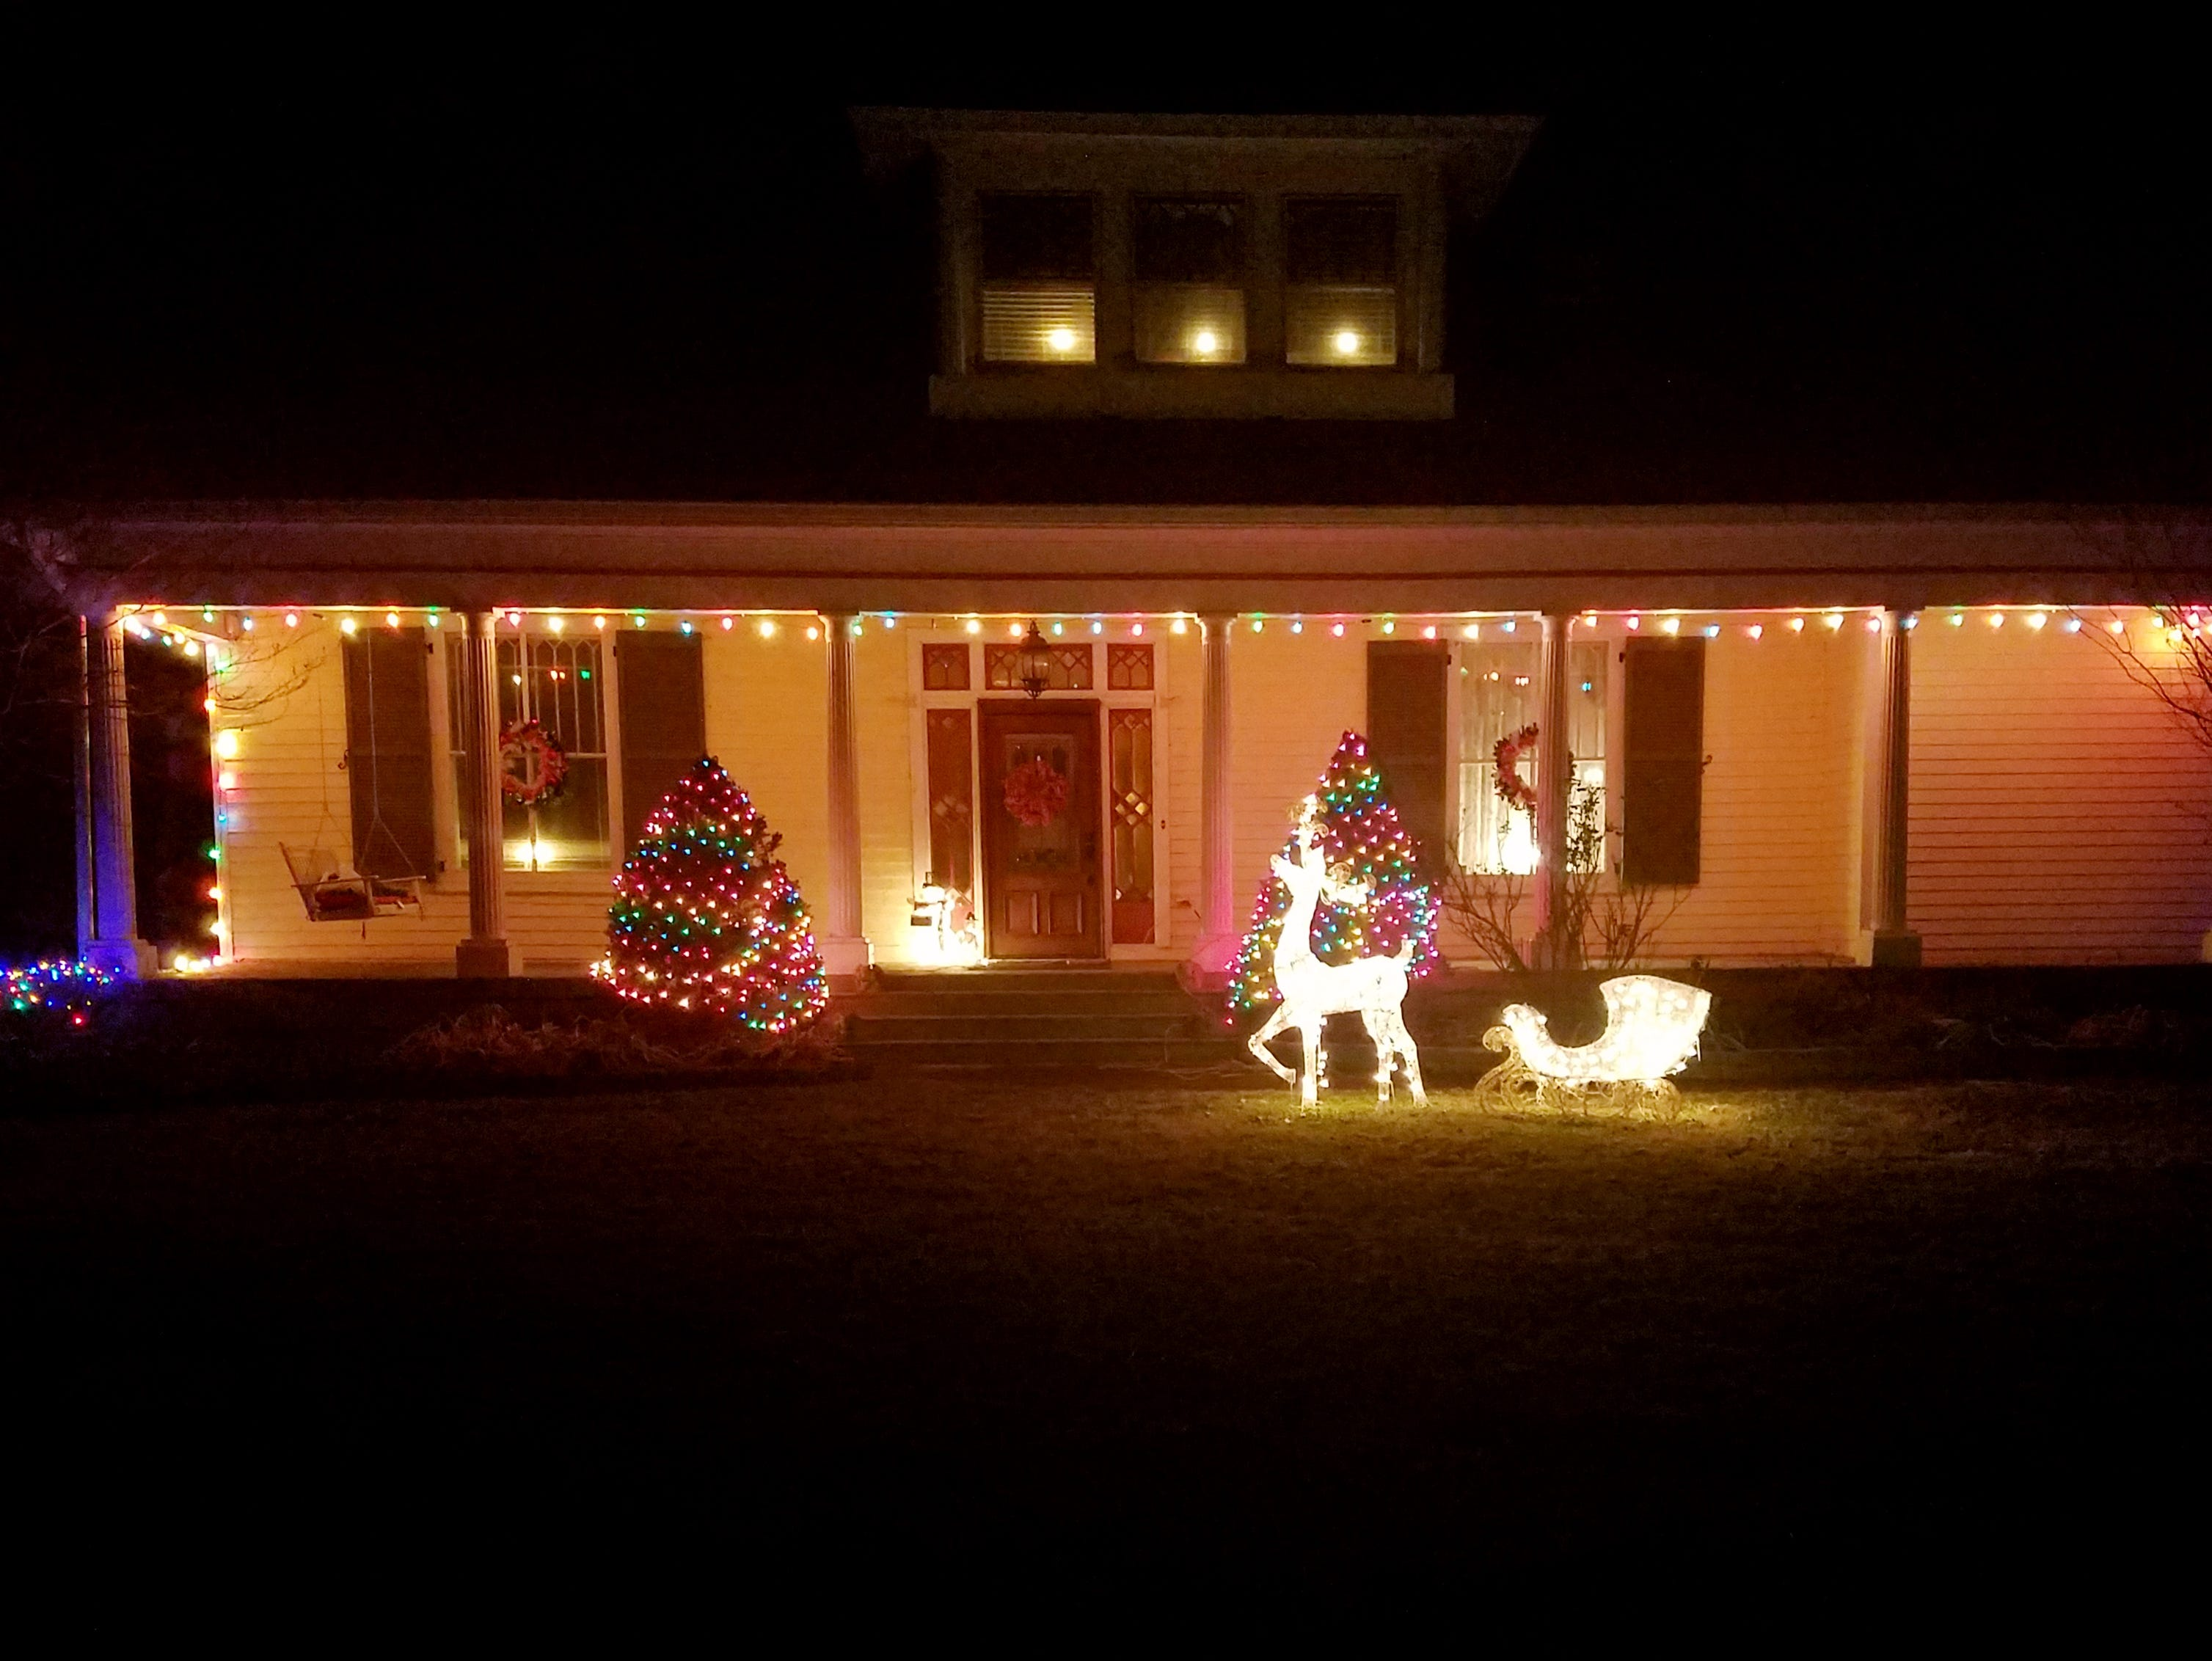 The home of Denver Schimming and Sheila Hobson on Old Dickerson Pike in Goodlettsville is decorated with Christmas lights.